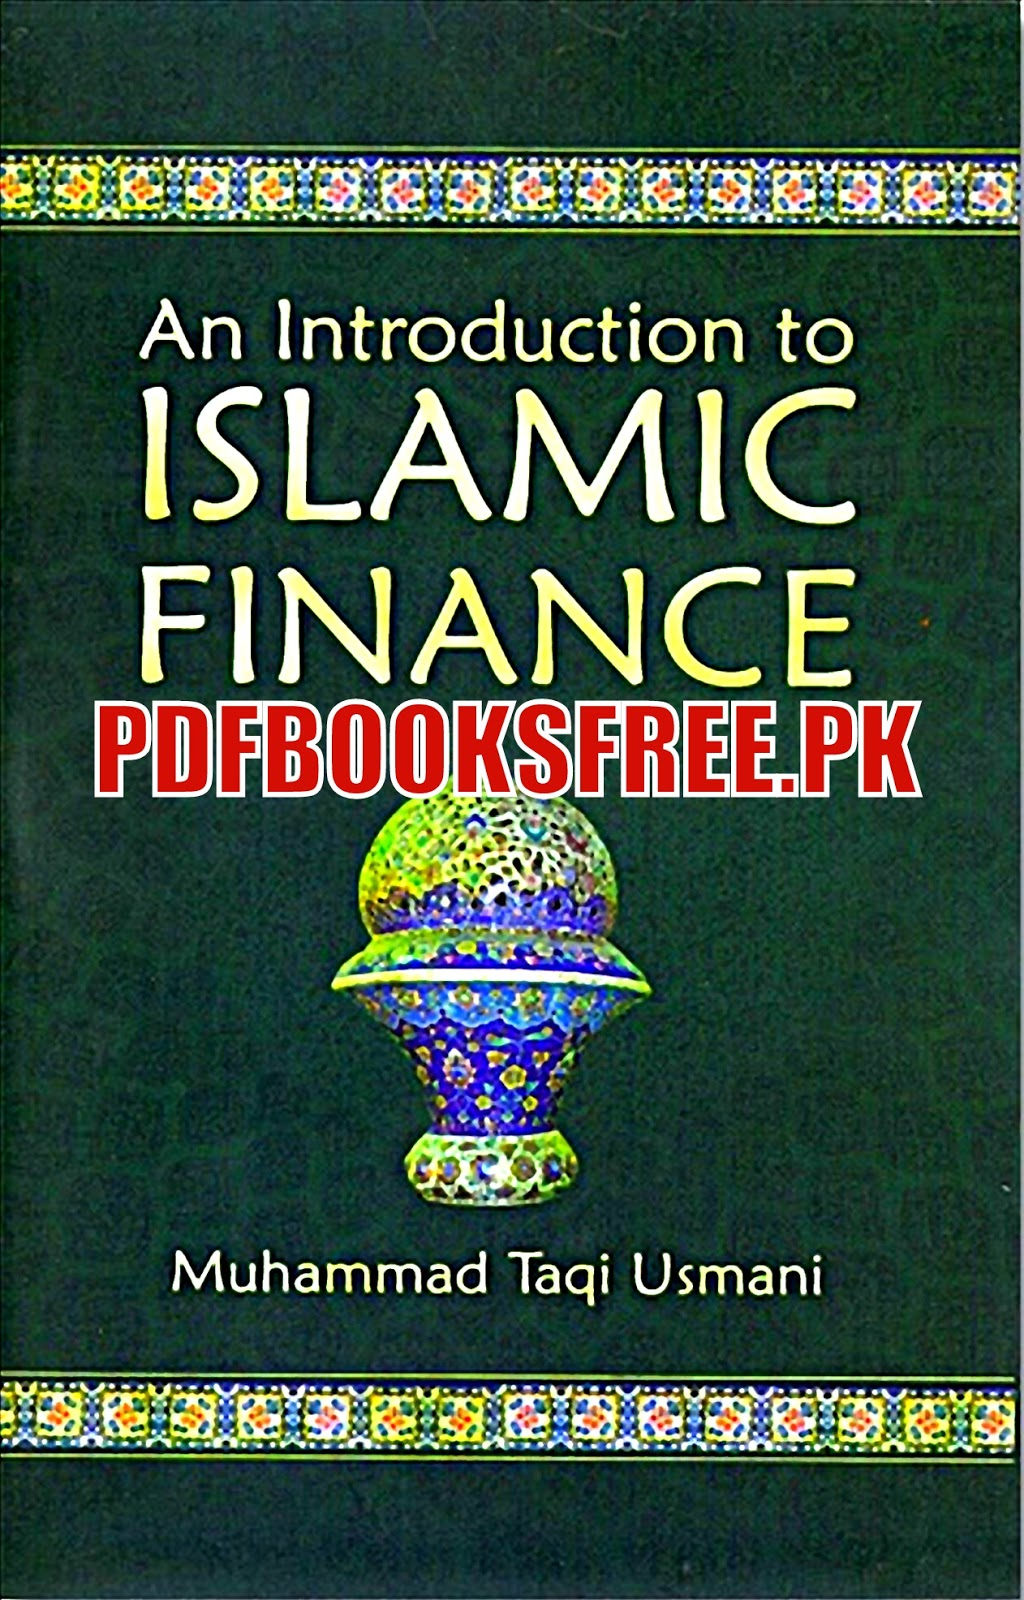 An Introduction to Islamic Finance Pdf Free Download